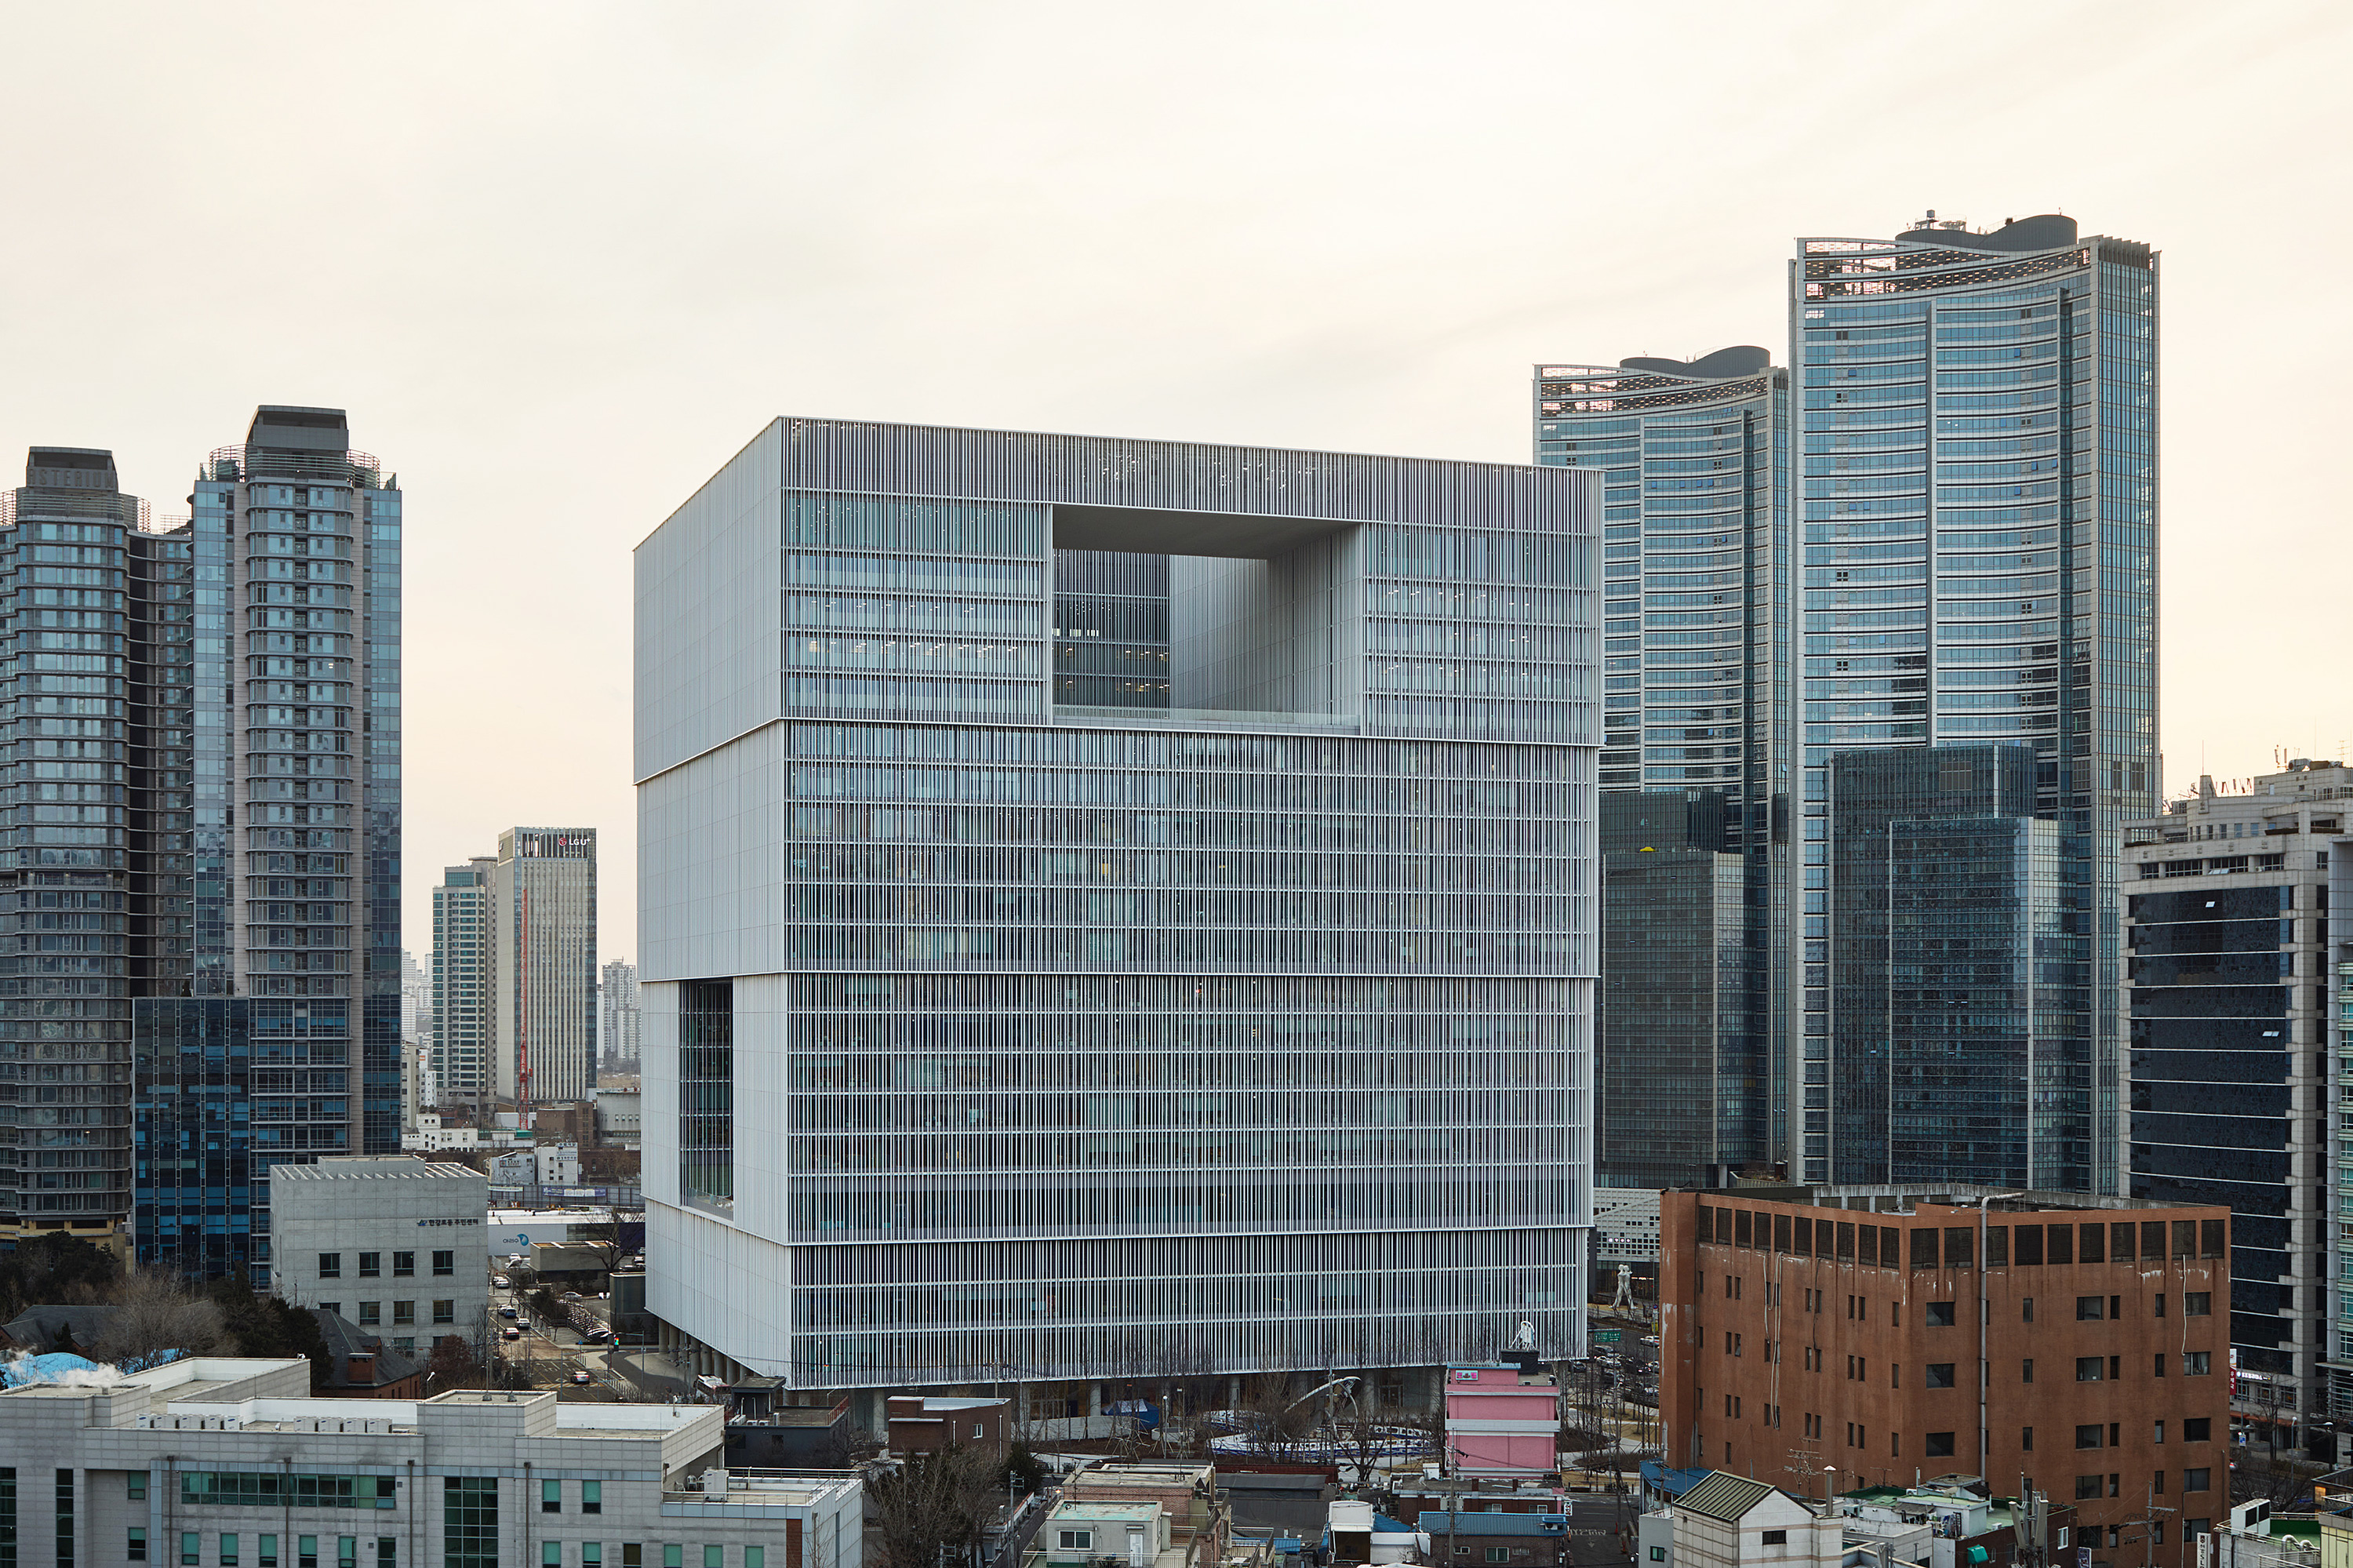 corea del sur amorepacific edificio david chipperfield architects